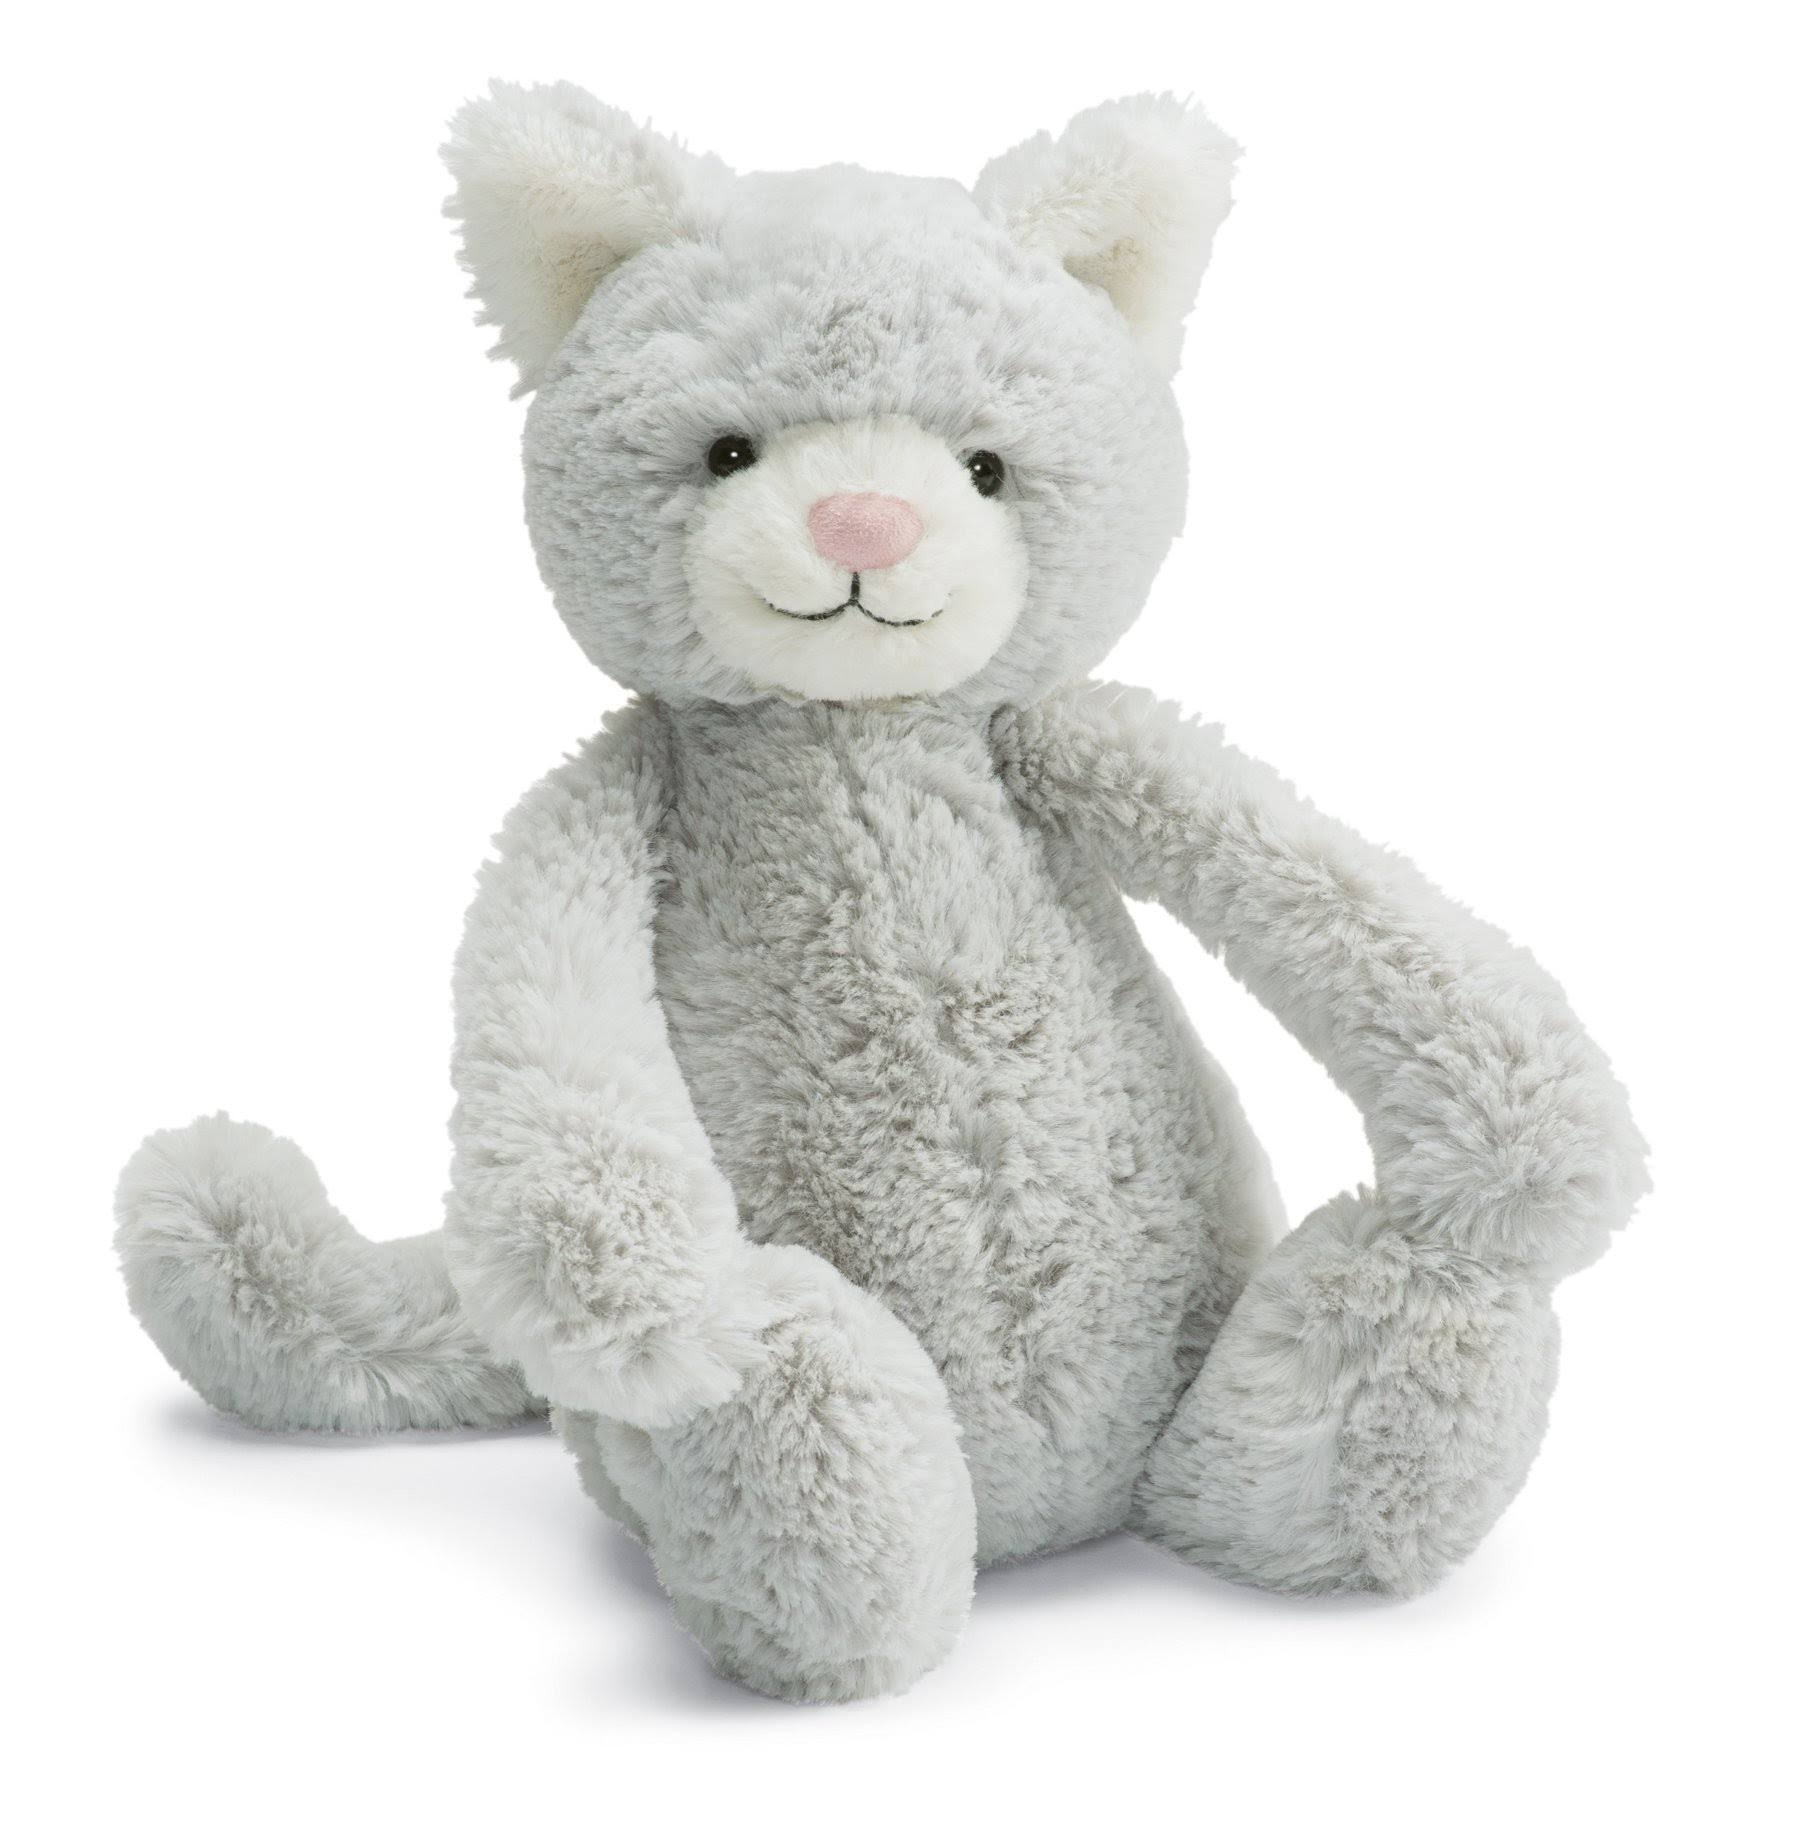 Jellycat London Bashful Grey Kitty - 12'', Medium